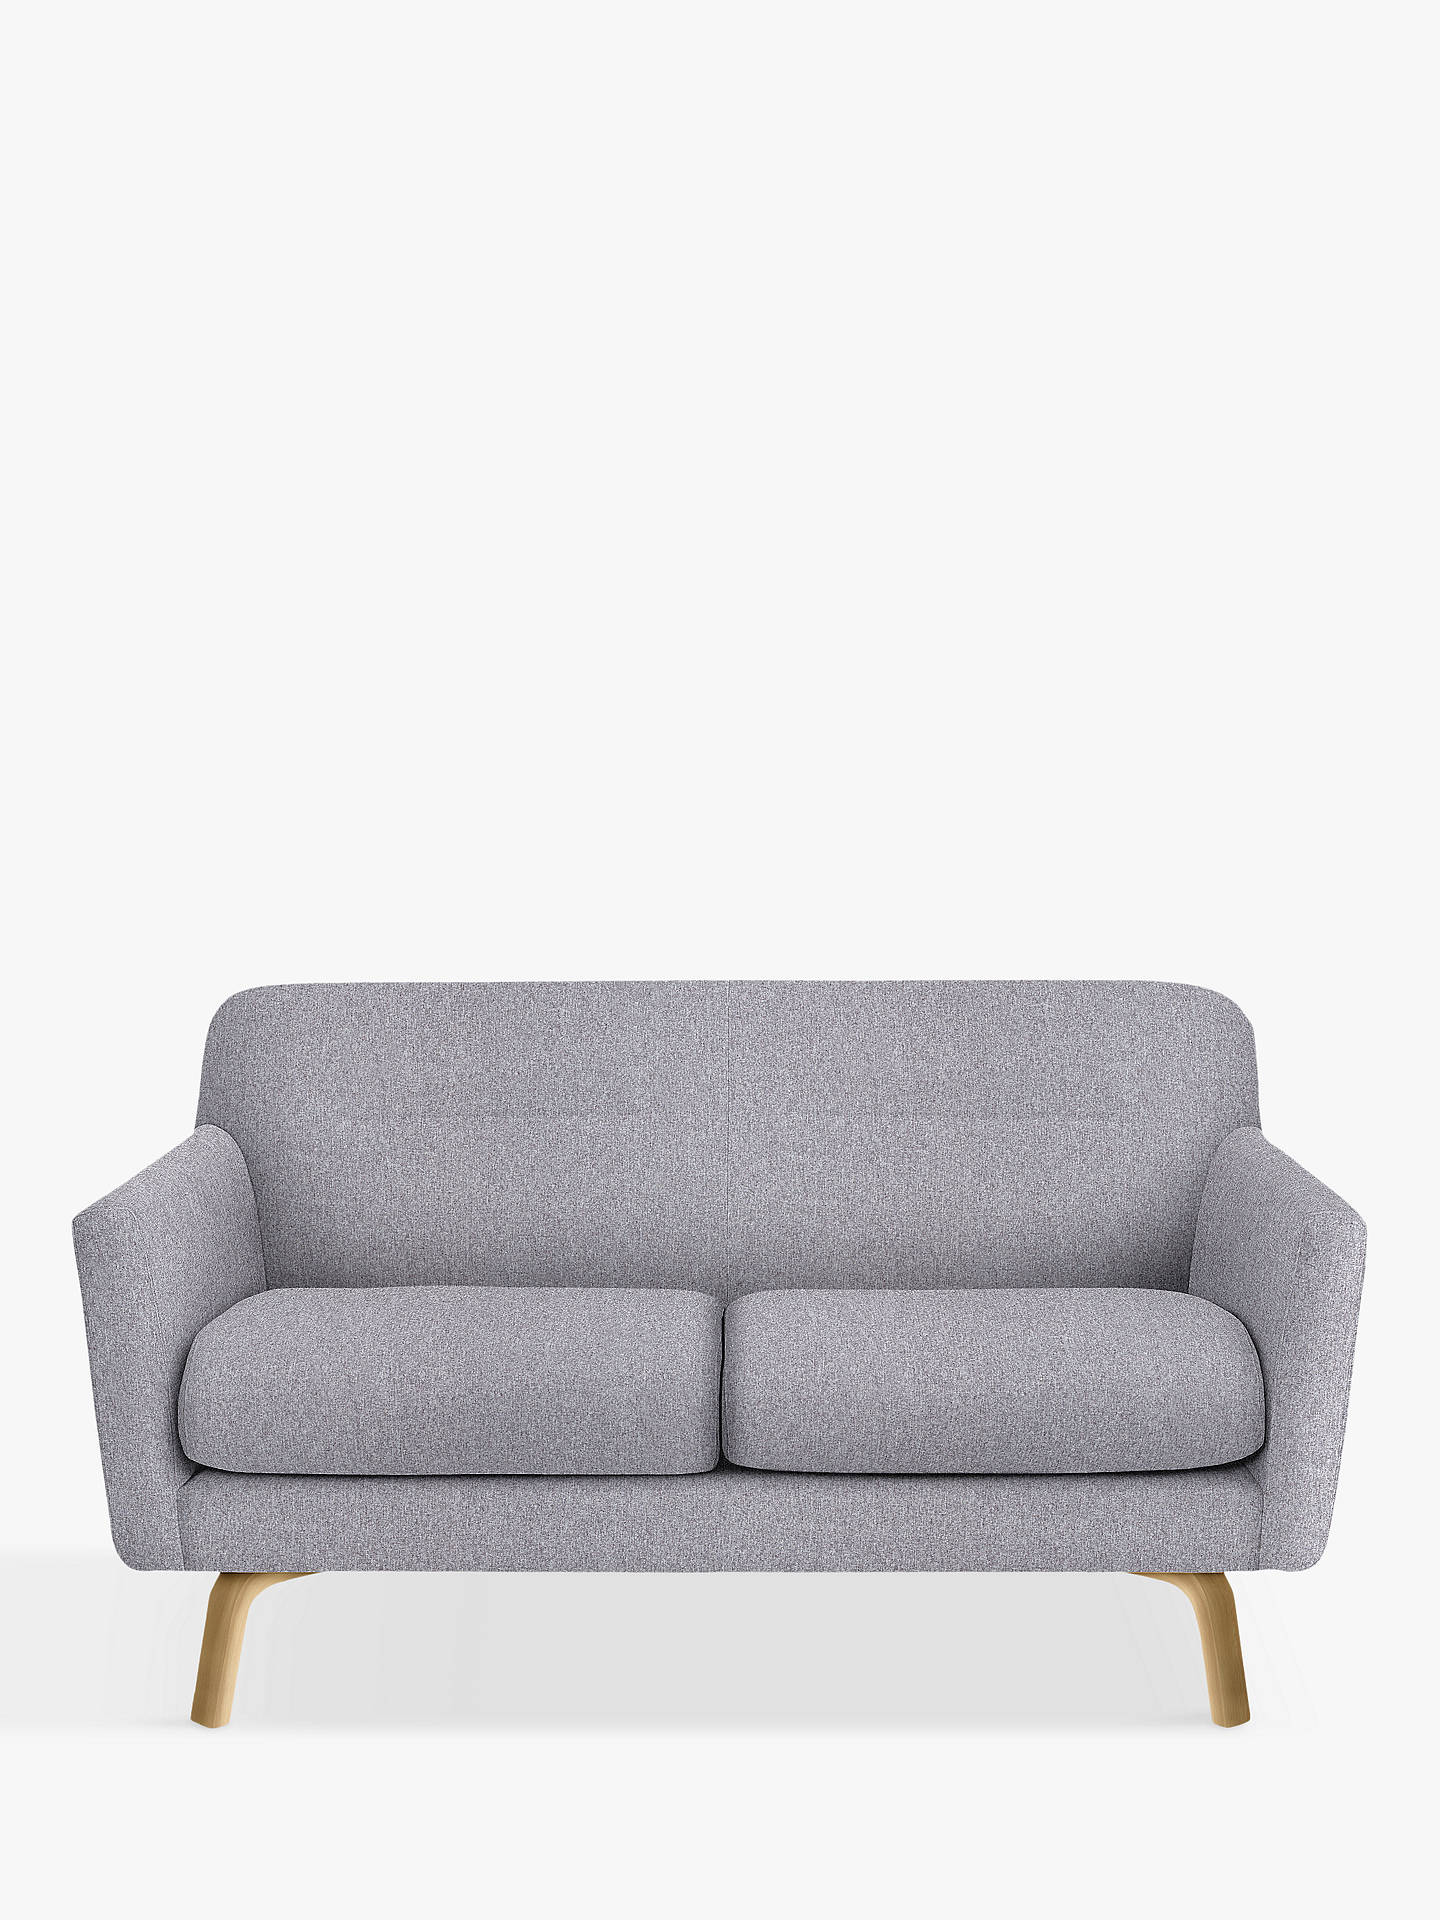 House By John Lewis Archie Medium 2 Seater Sofa Light Leg Saga Grey Online